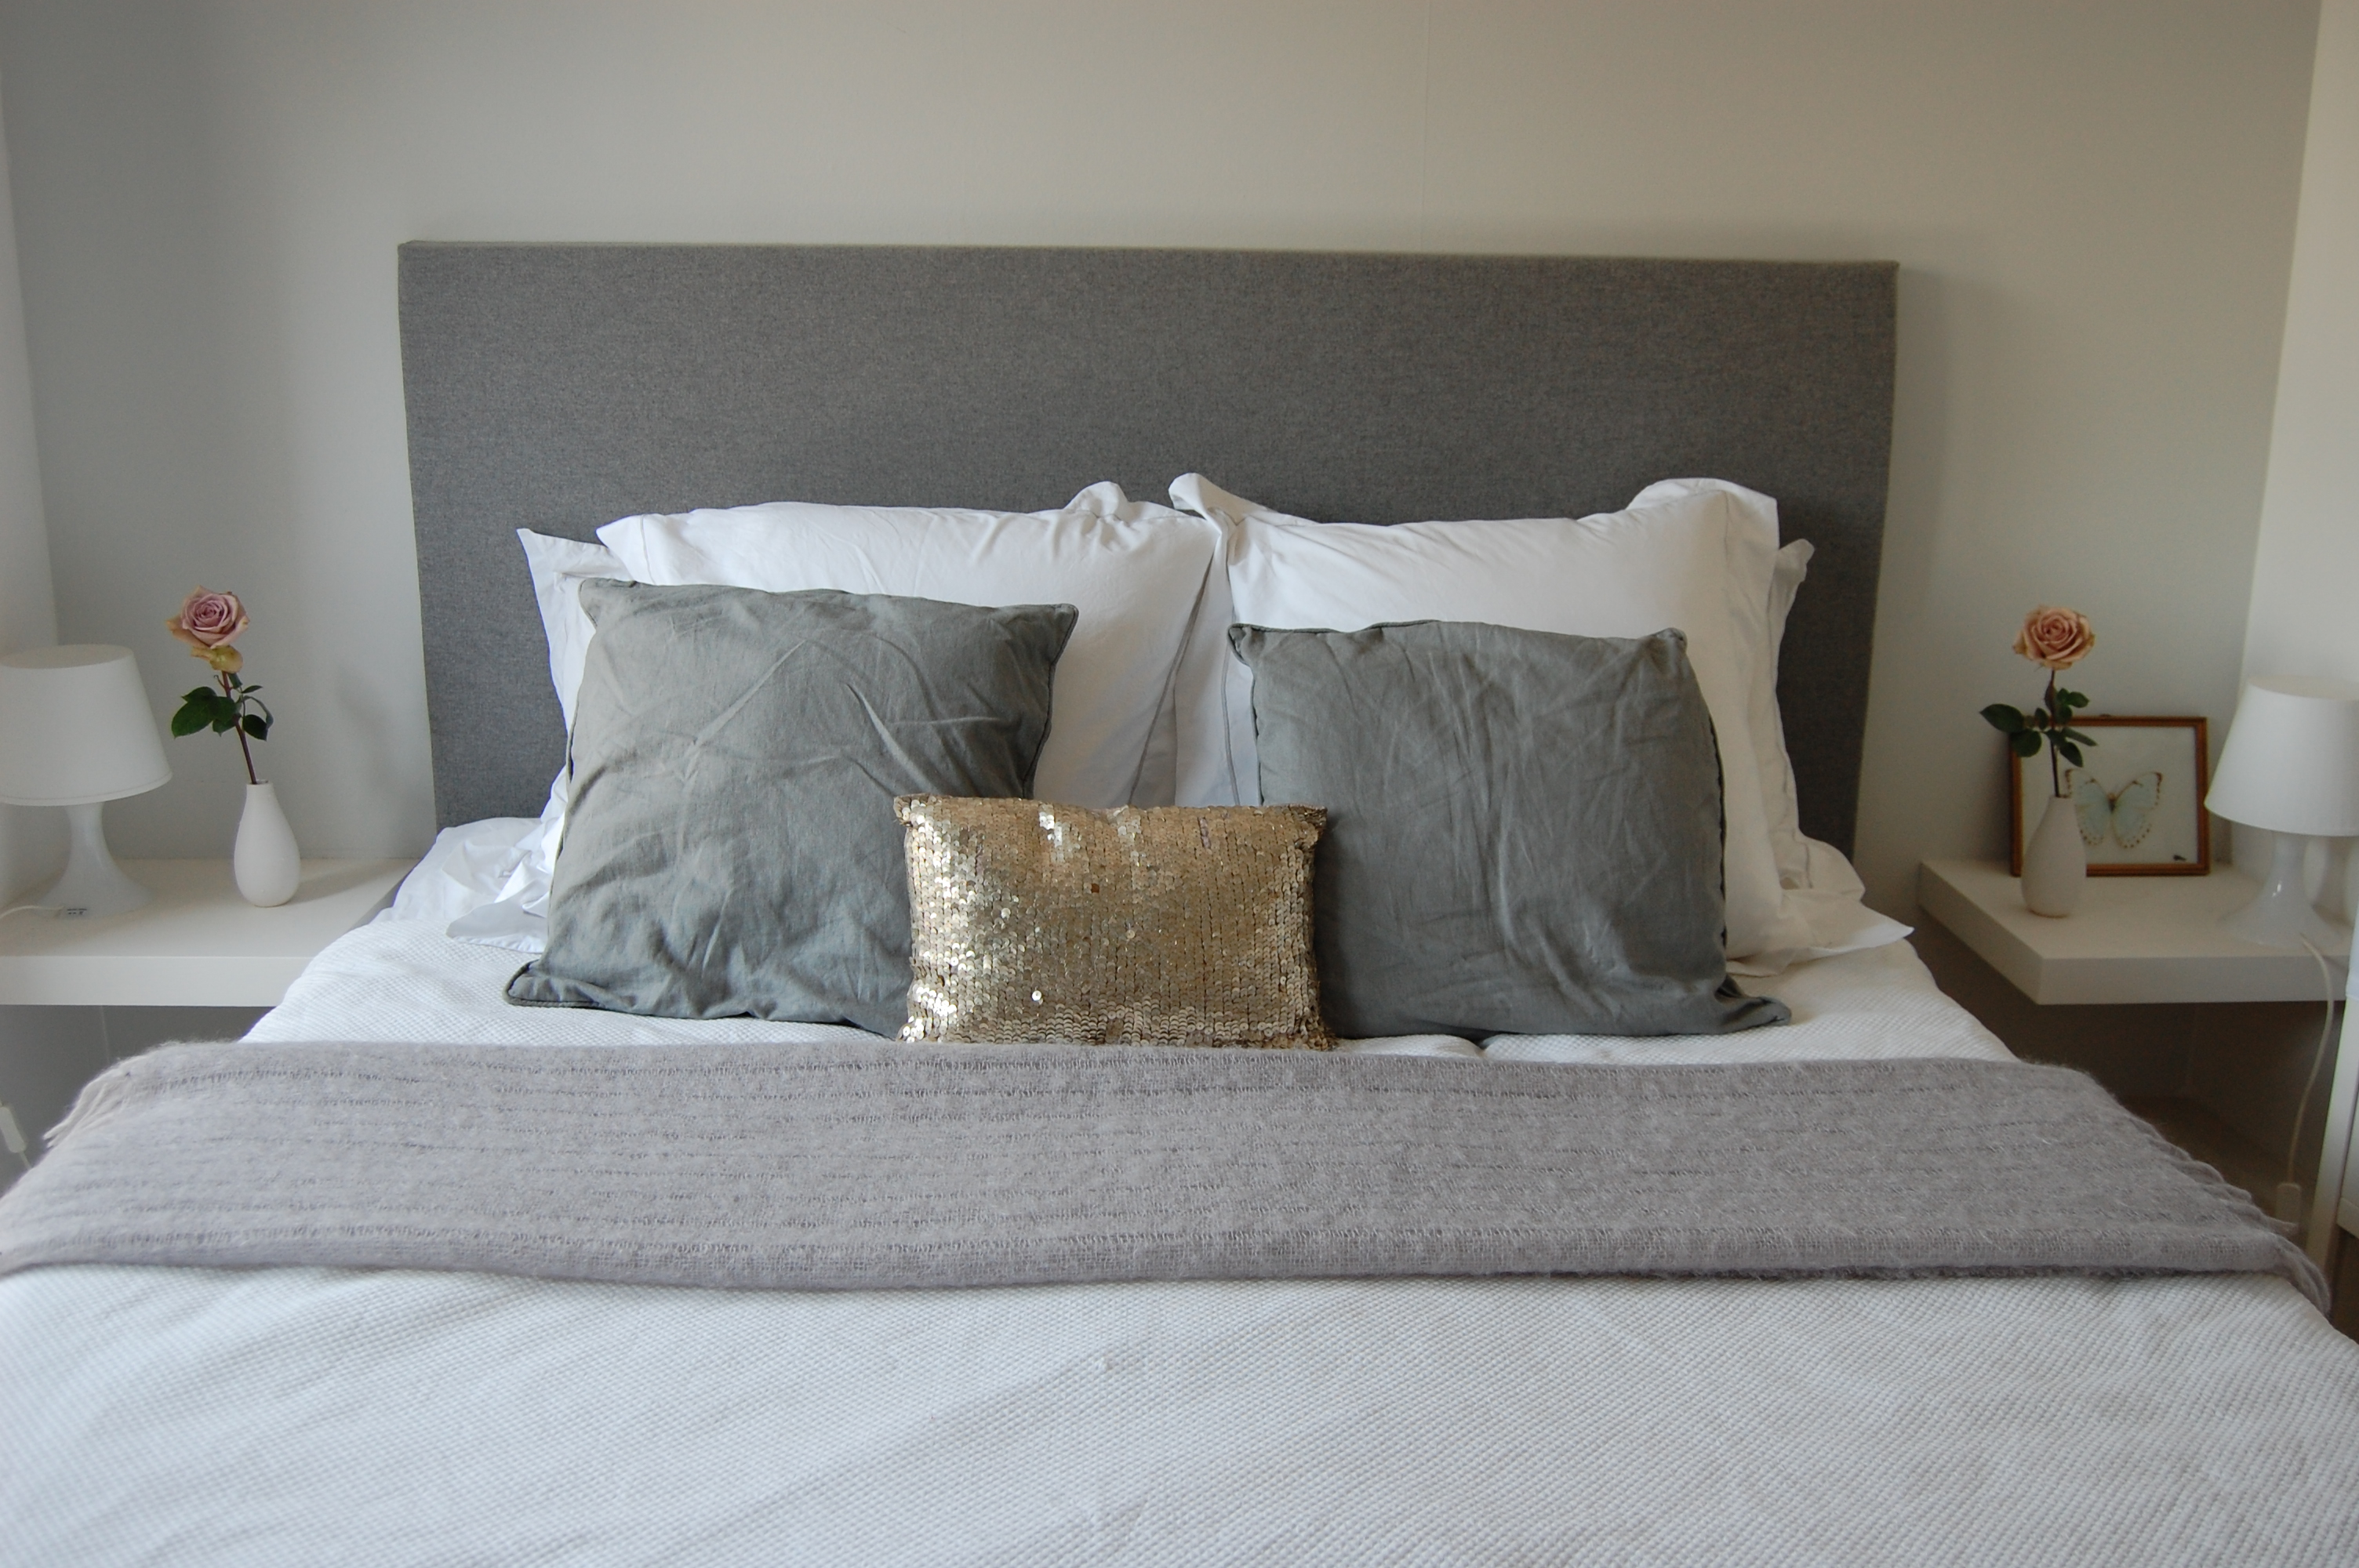 How to make a headboard emily wheeler for Makeshift headboard